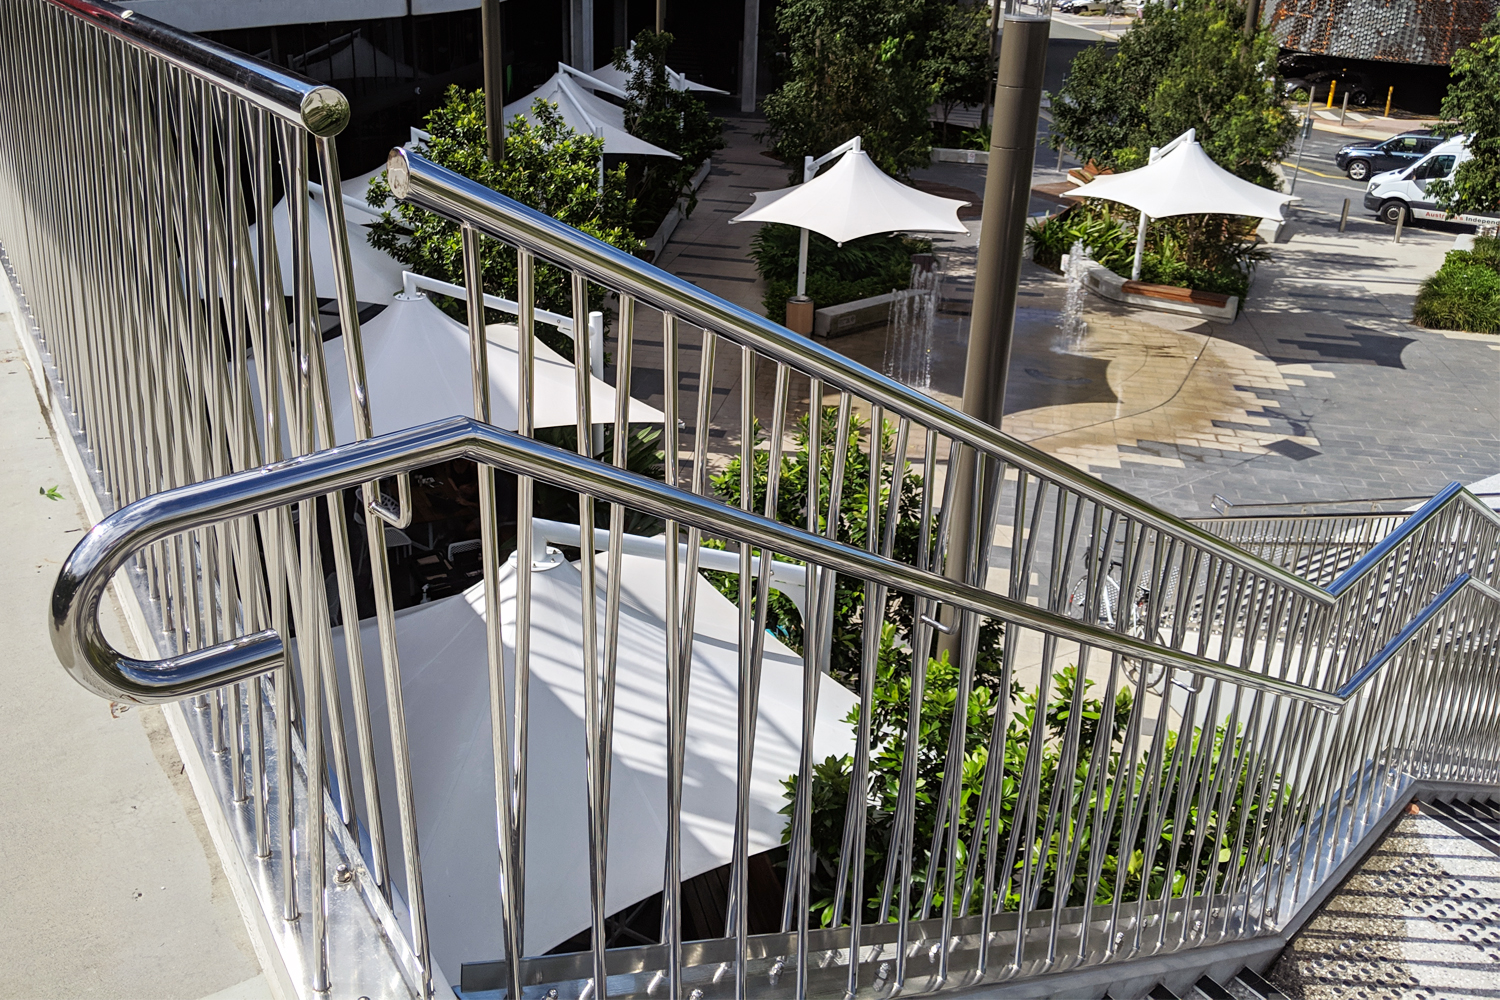 The Kitchens stainless balustrade at Robina Town Centre